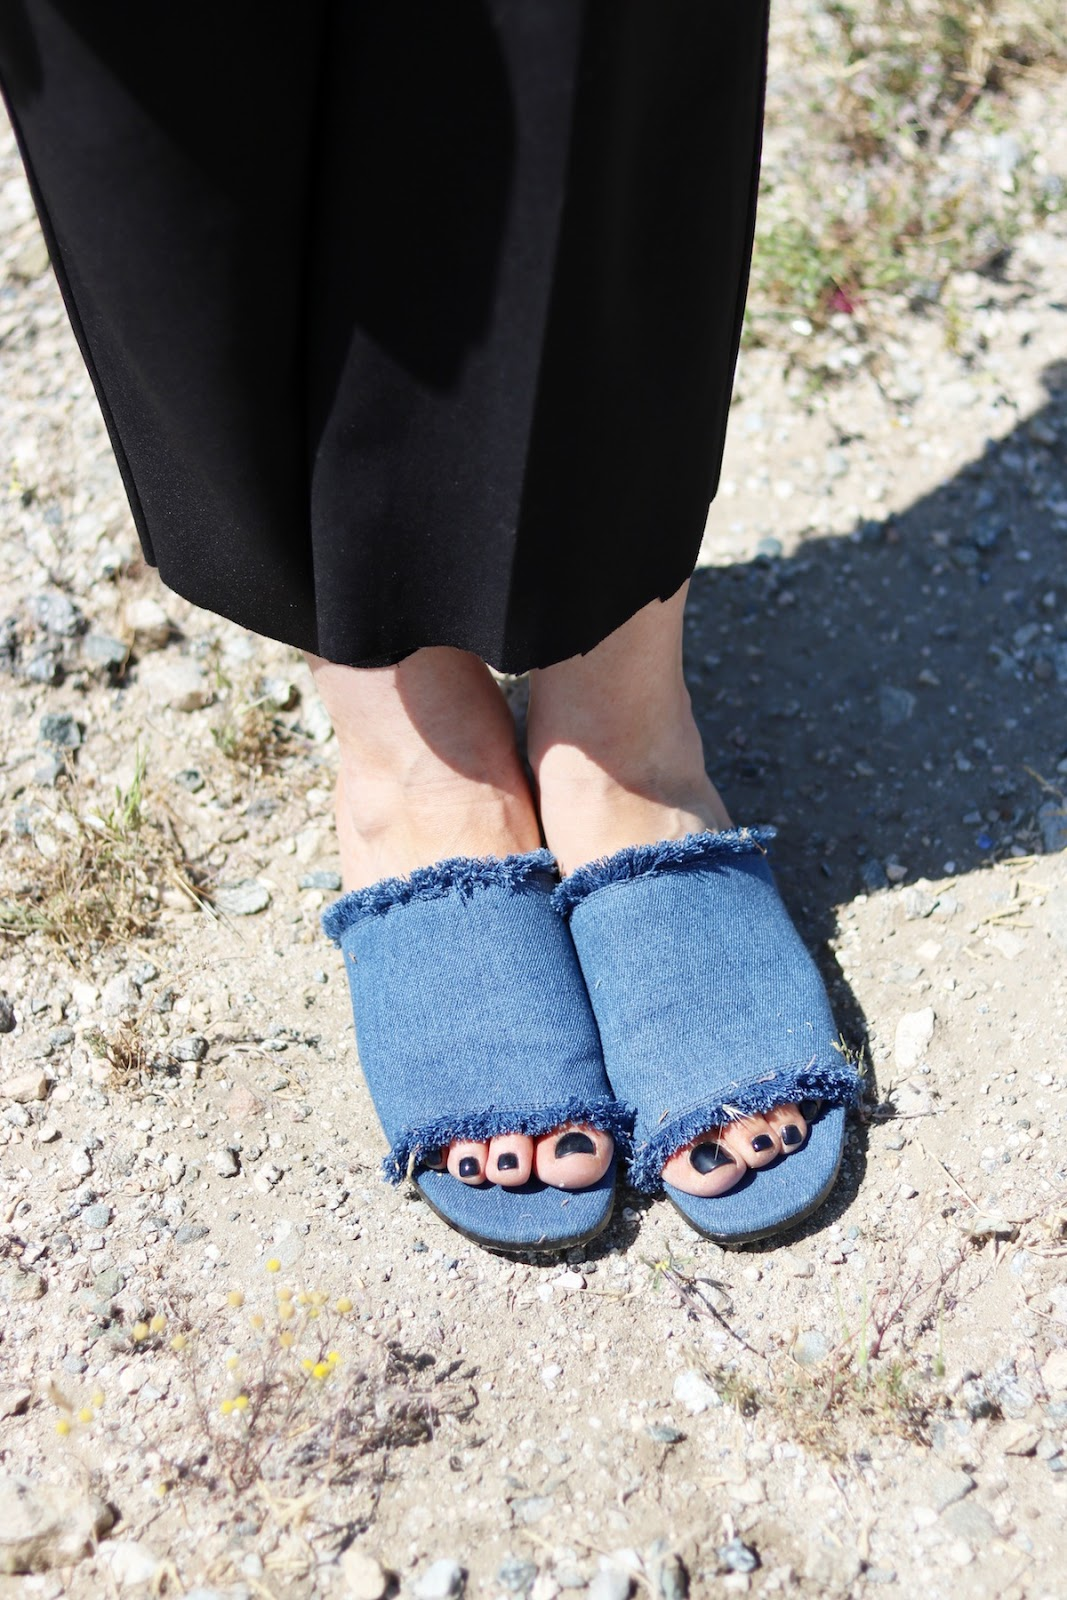 Lord and taylor denim sandals outfit